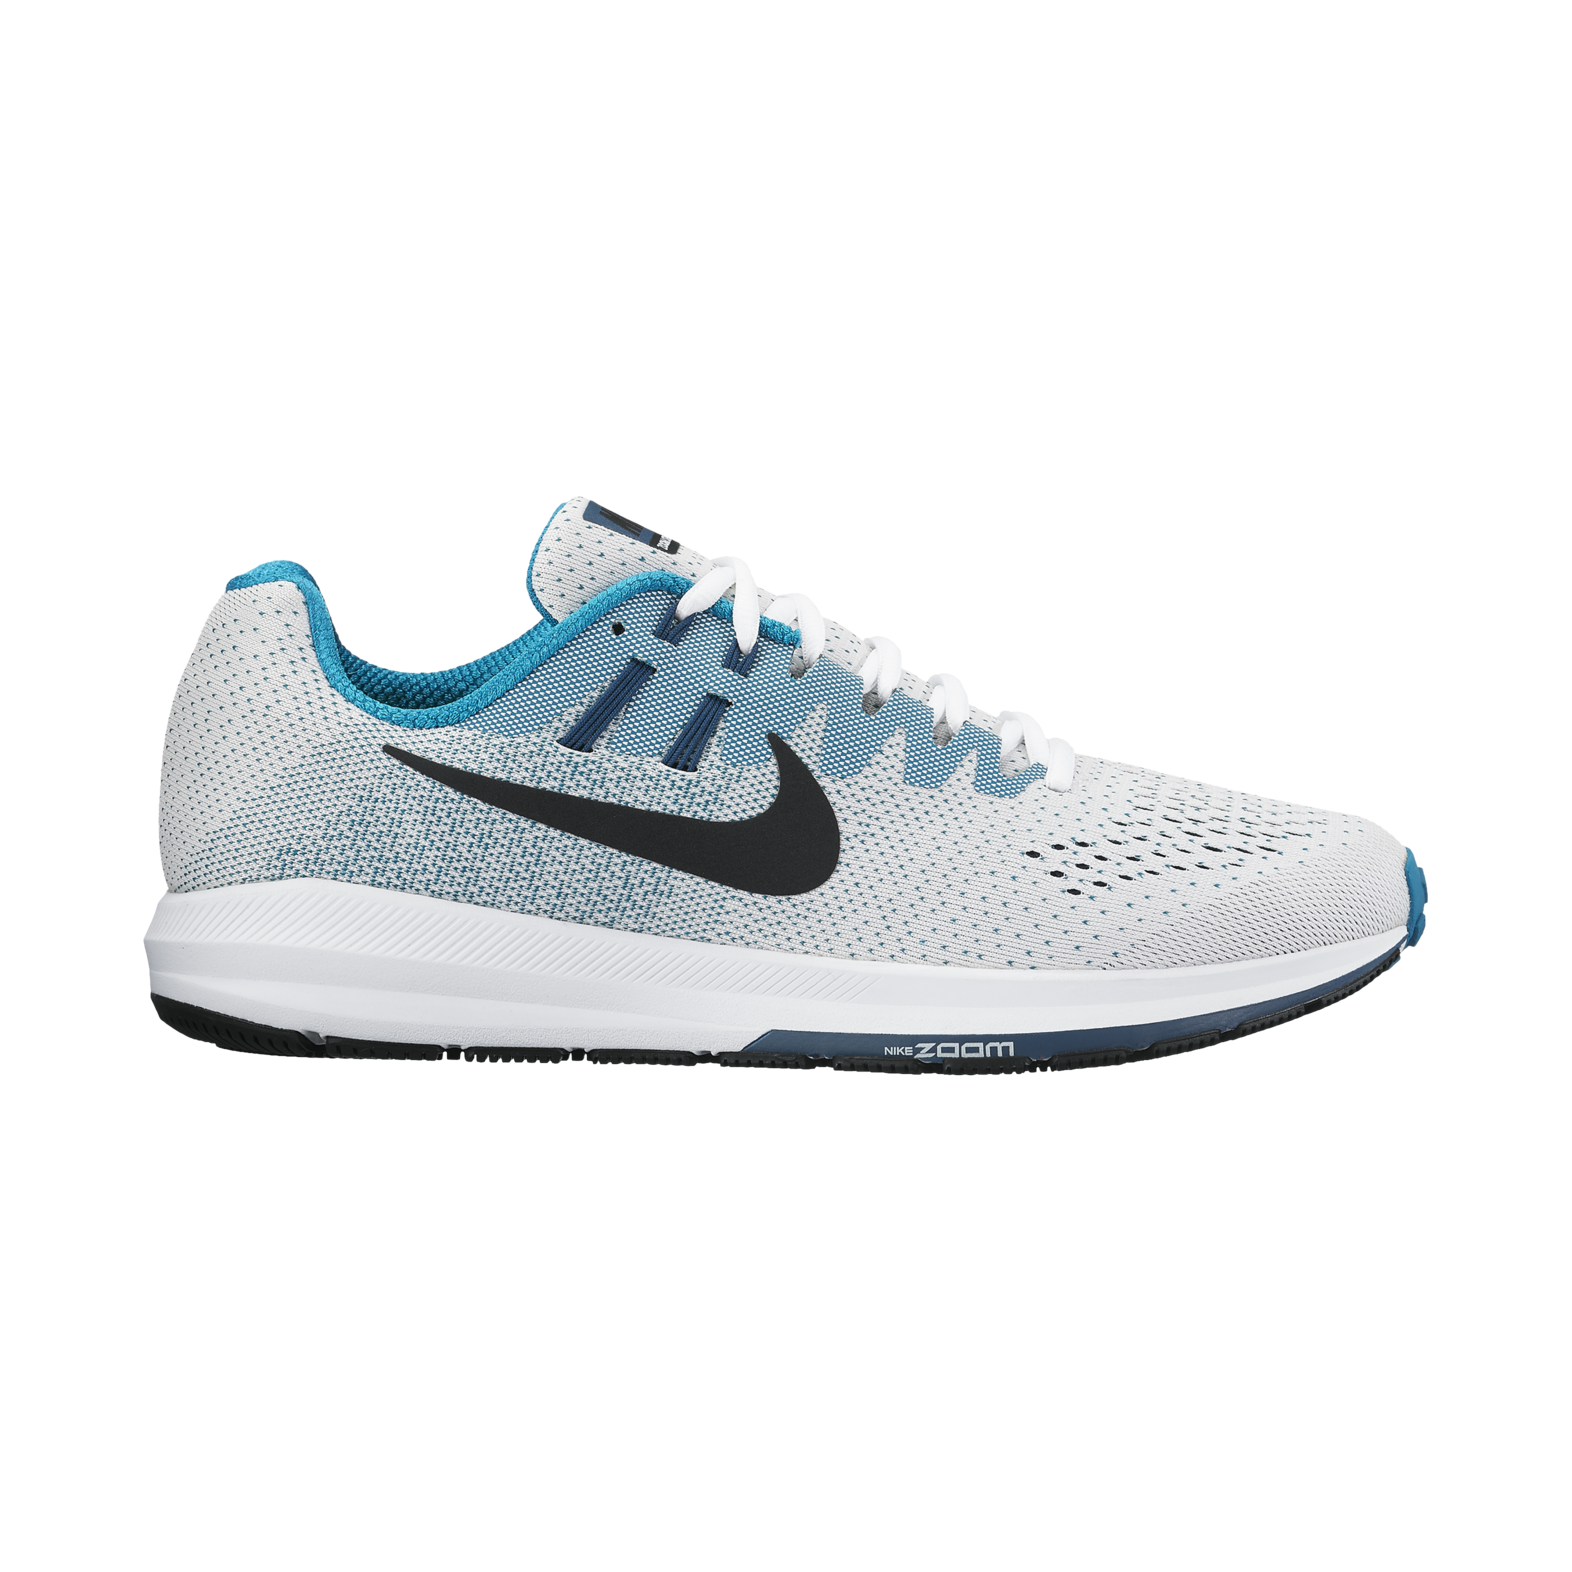 finest selection dda16 541bf NIKE AIR ZOOM STRUCTURE 20 MENS